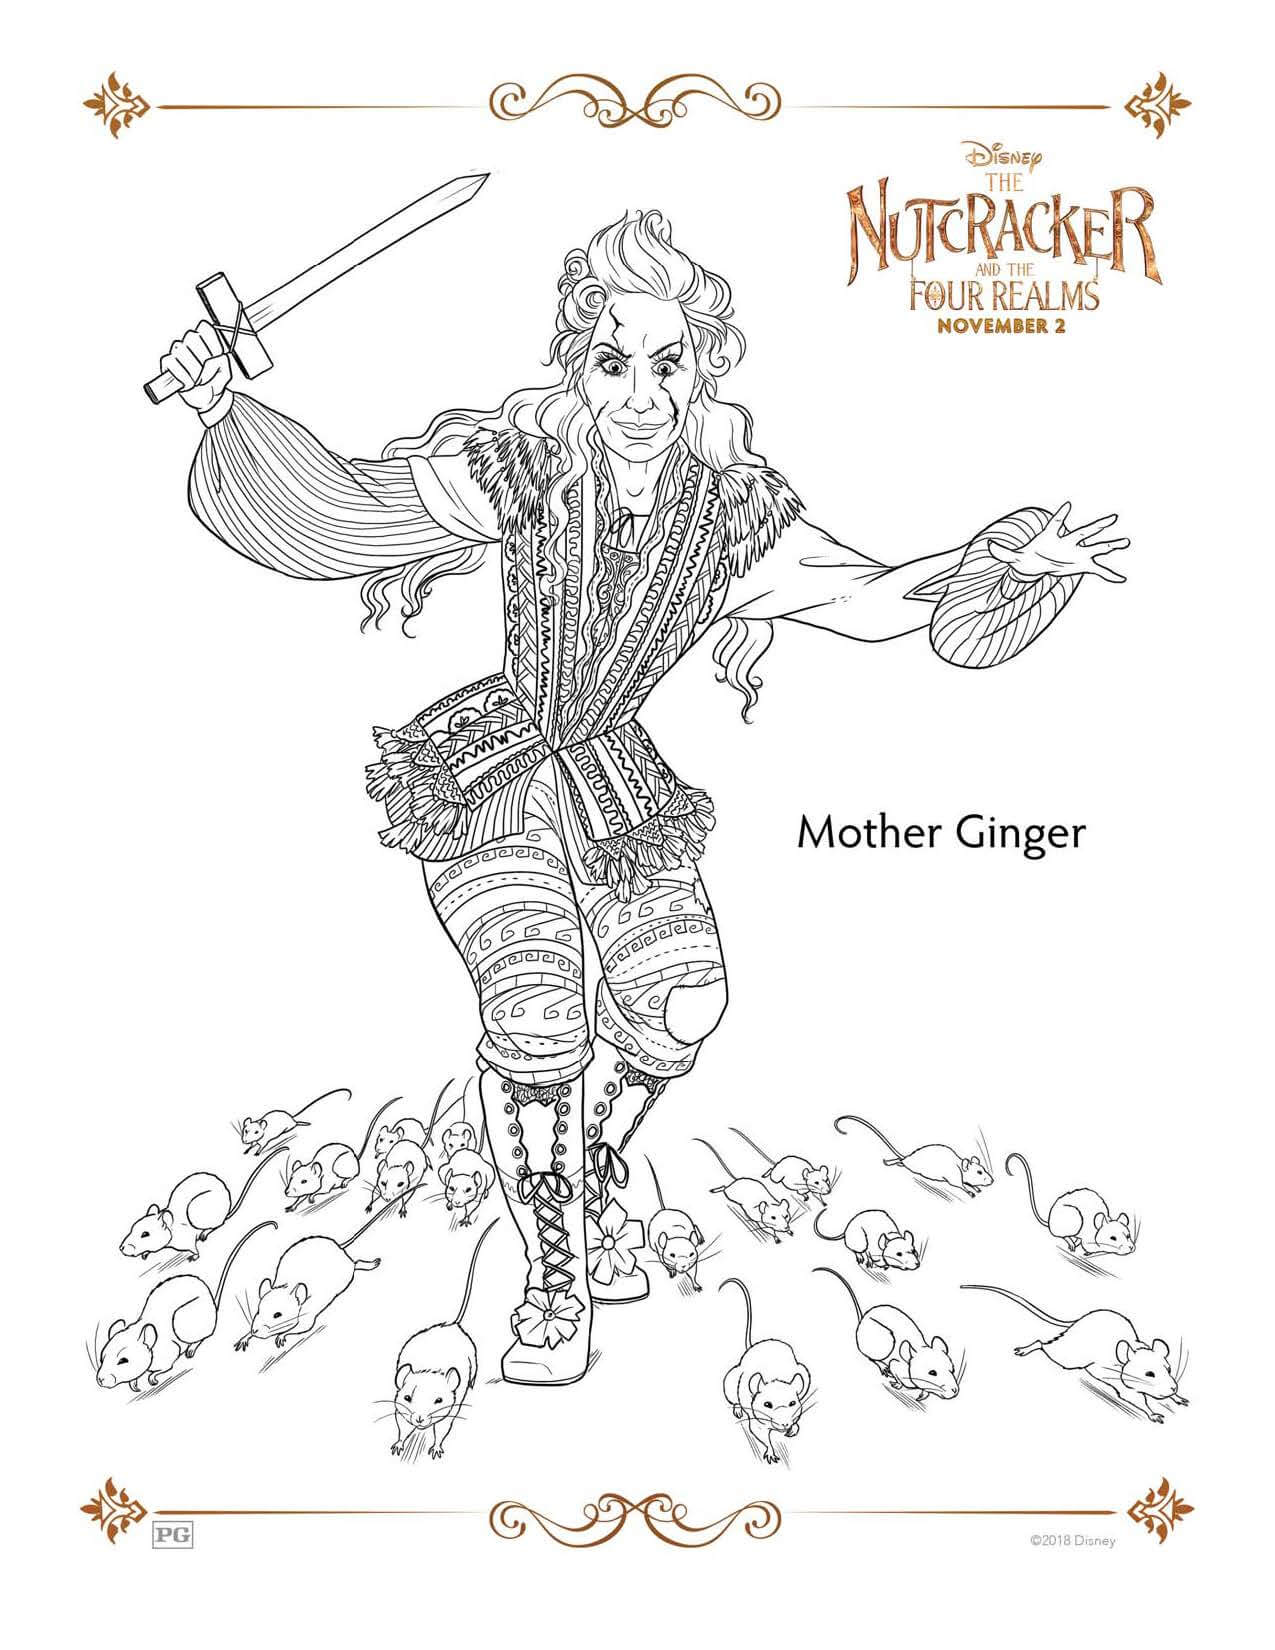 Mother Ginger THE NUTCRACKER AND THE FOUR REALMS